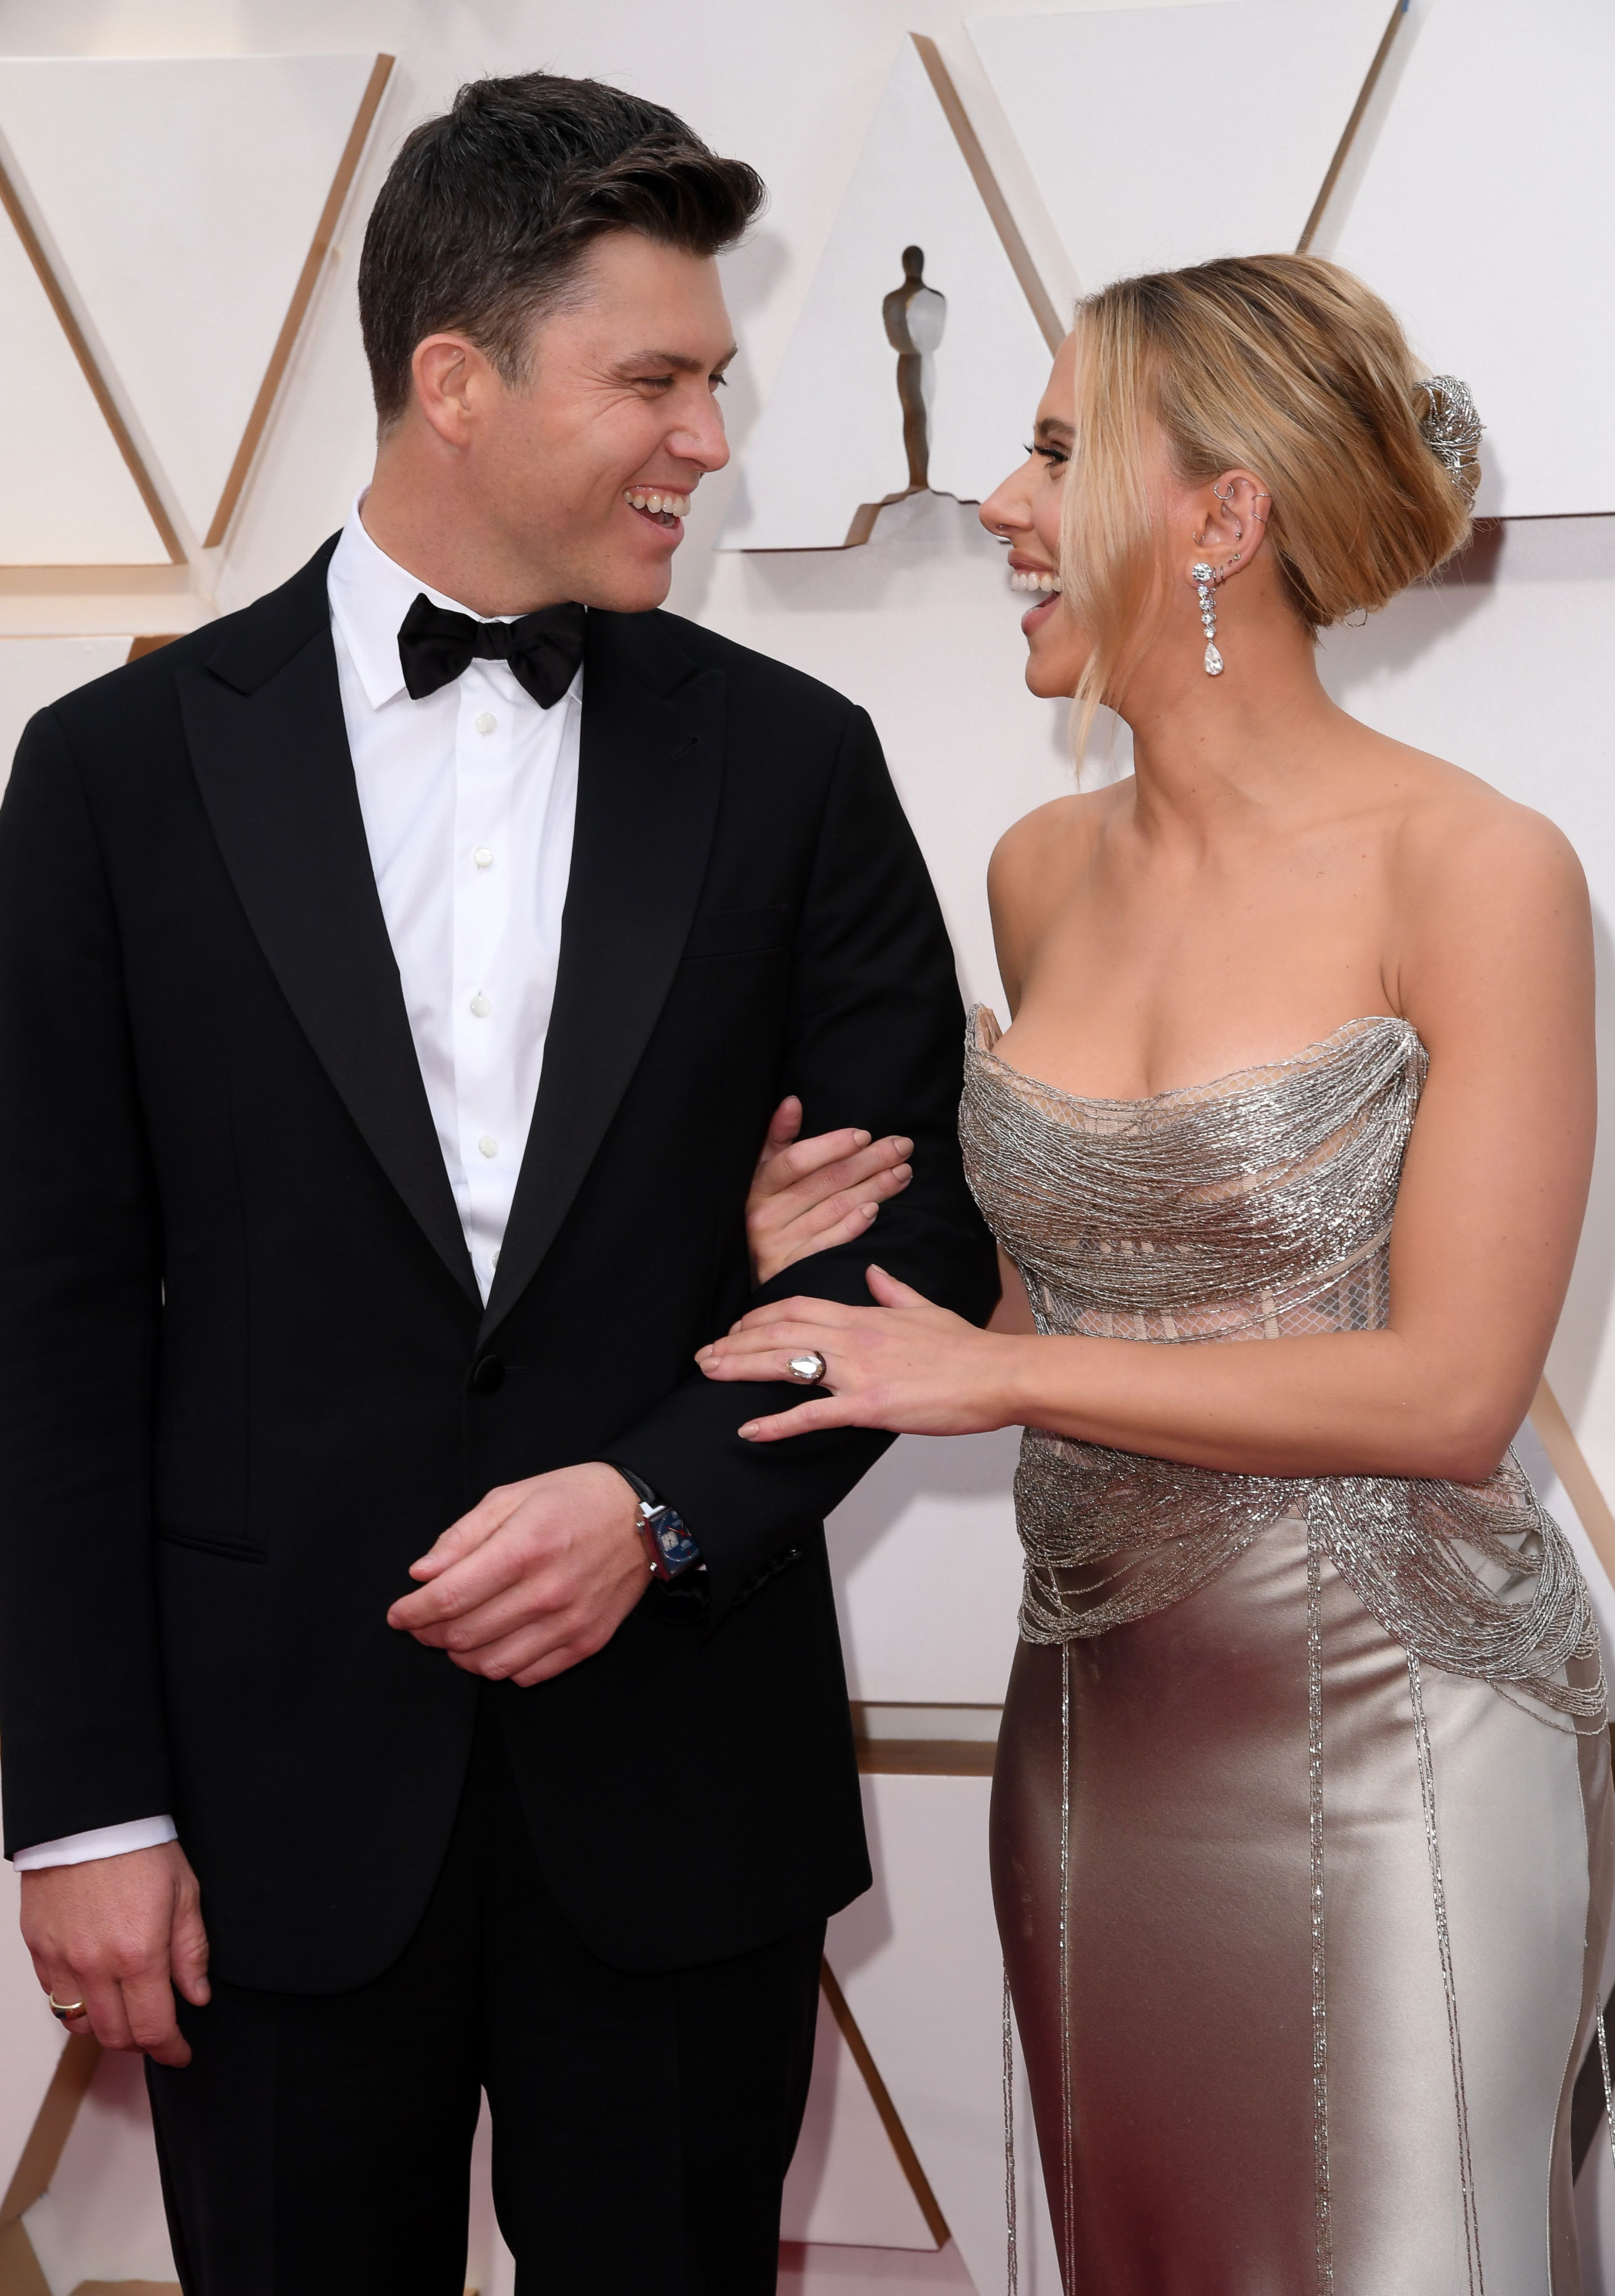 Scarlett Johansson And Colin Jost Share Adorable Moment At Oscars